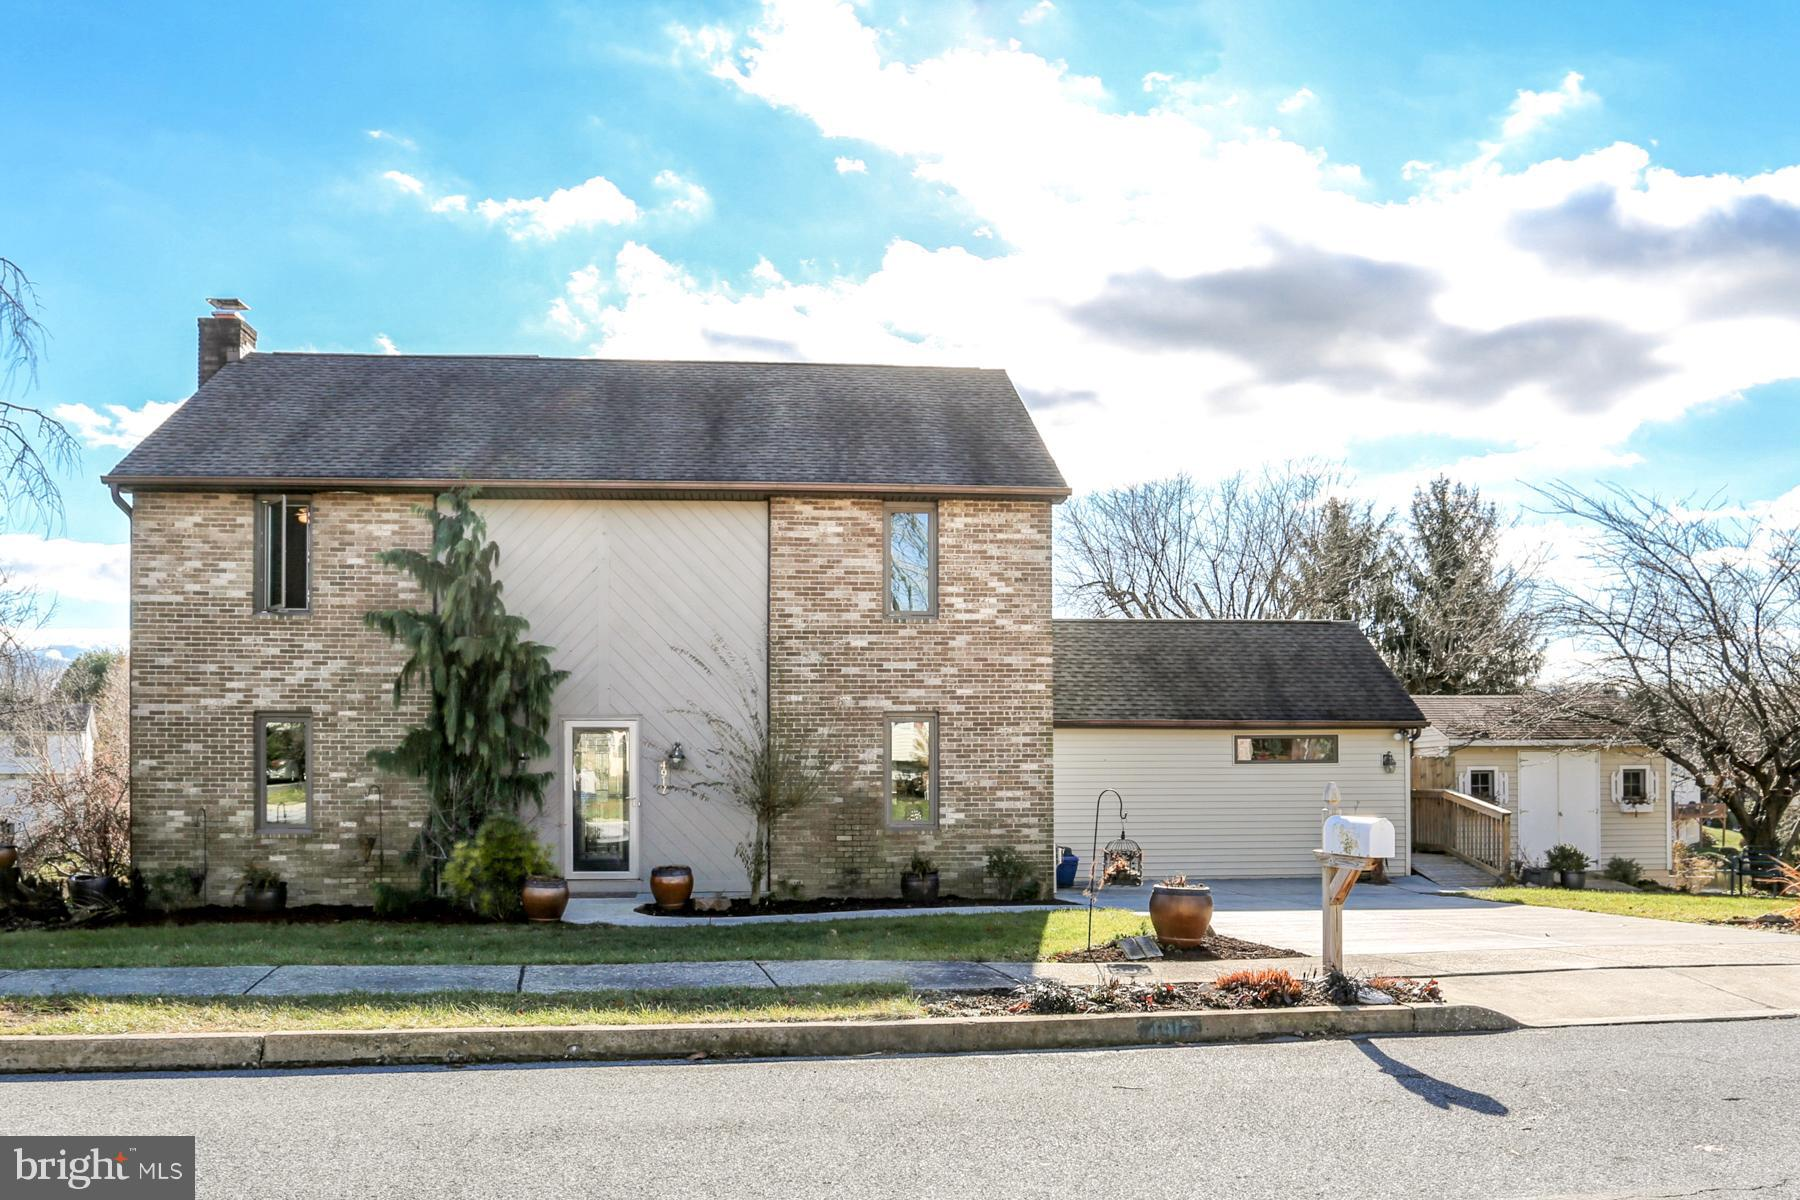 Home For Sale At 4917 Killington Drive In Harrisburg Pa For